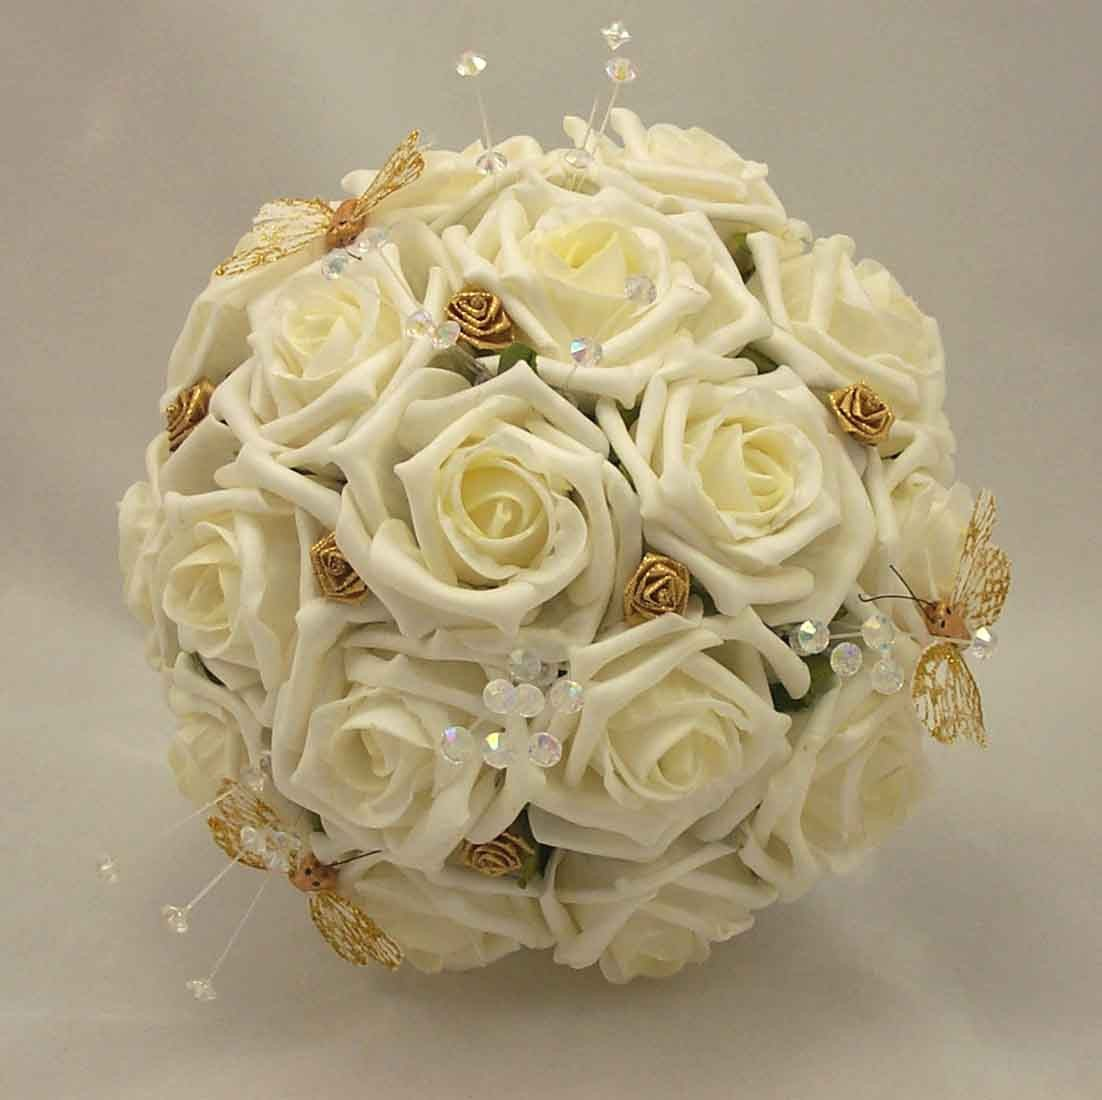 Bridesmaids bouquets ivory rose gold butterfly bouquet silk ivory rose gold butterfly bouquet izmirmasajfo